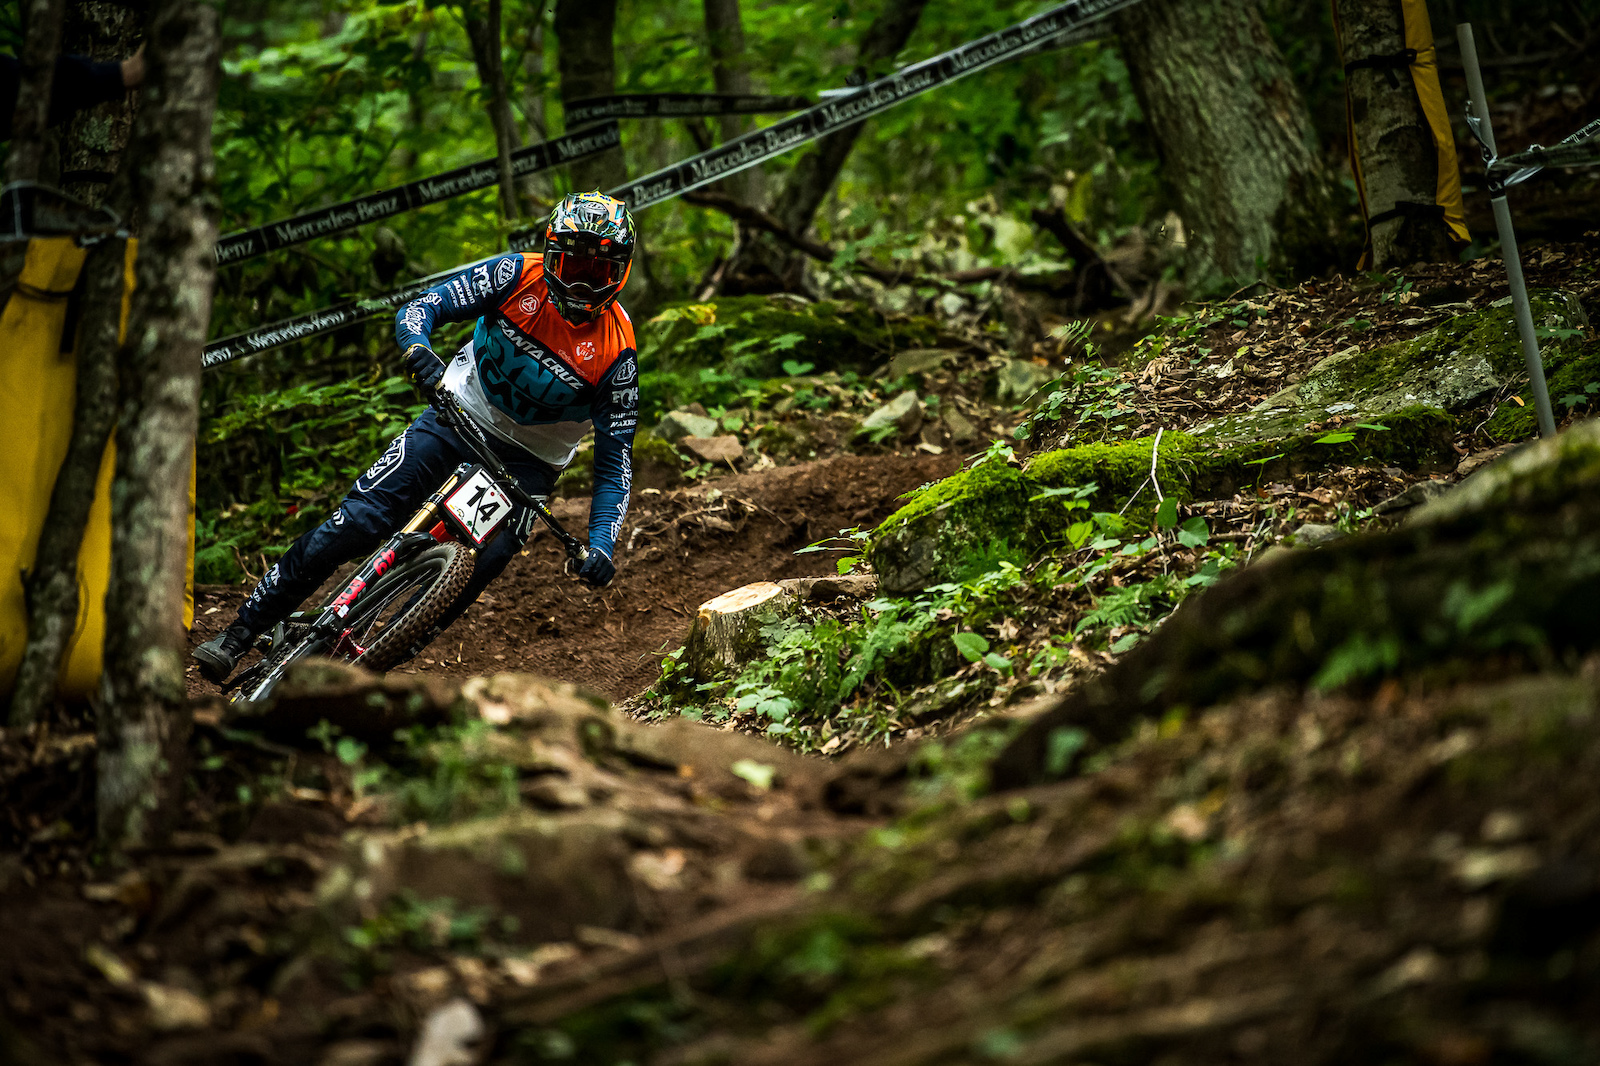 Luca Shaw getting up to speed deep in the forest.